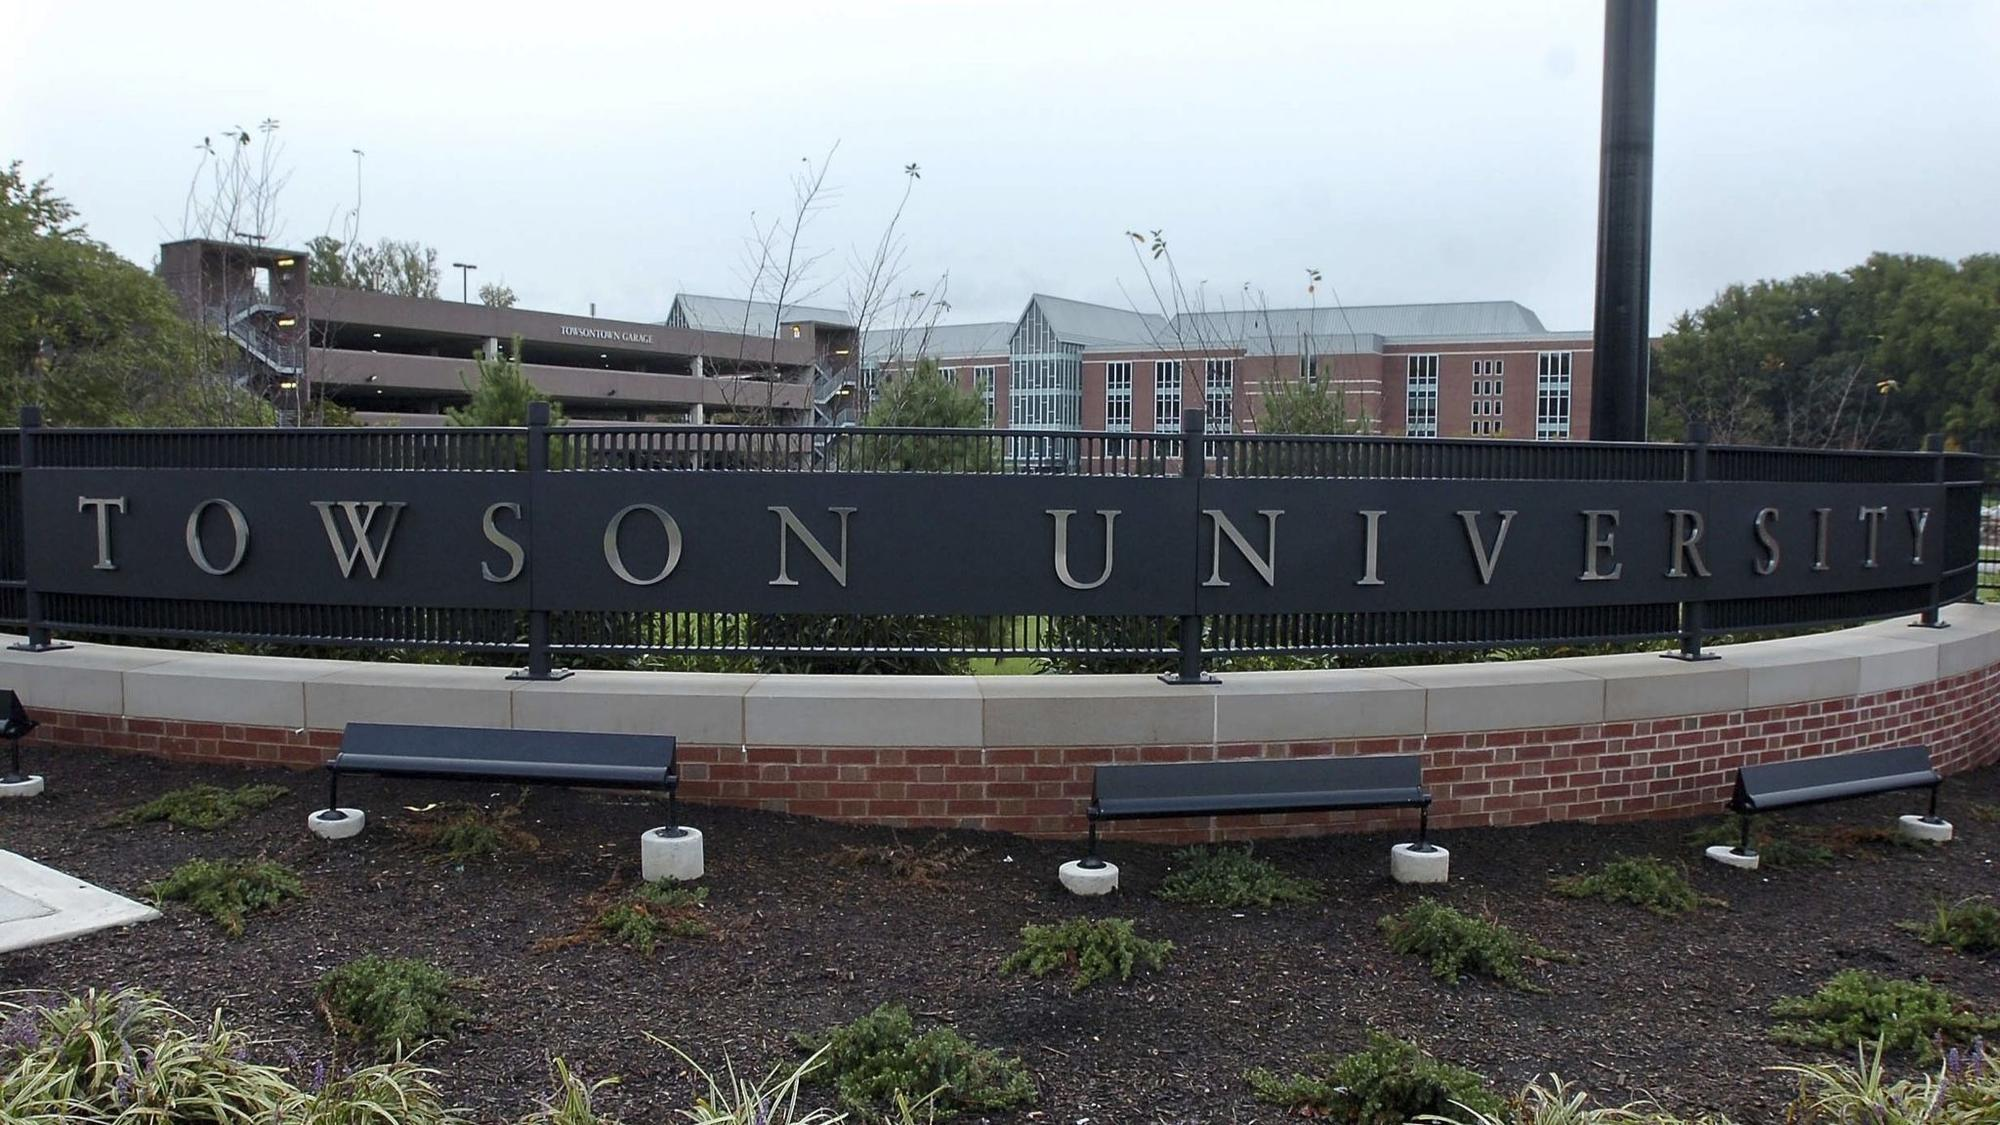 towson university dating